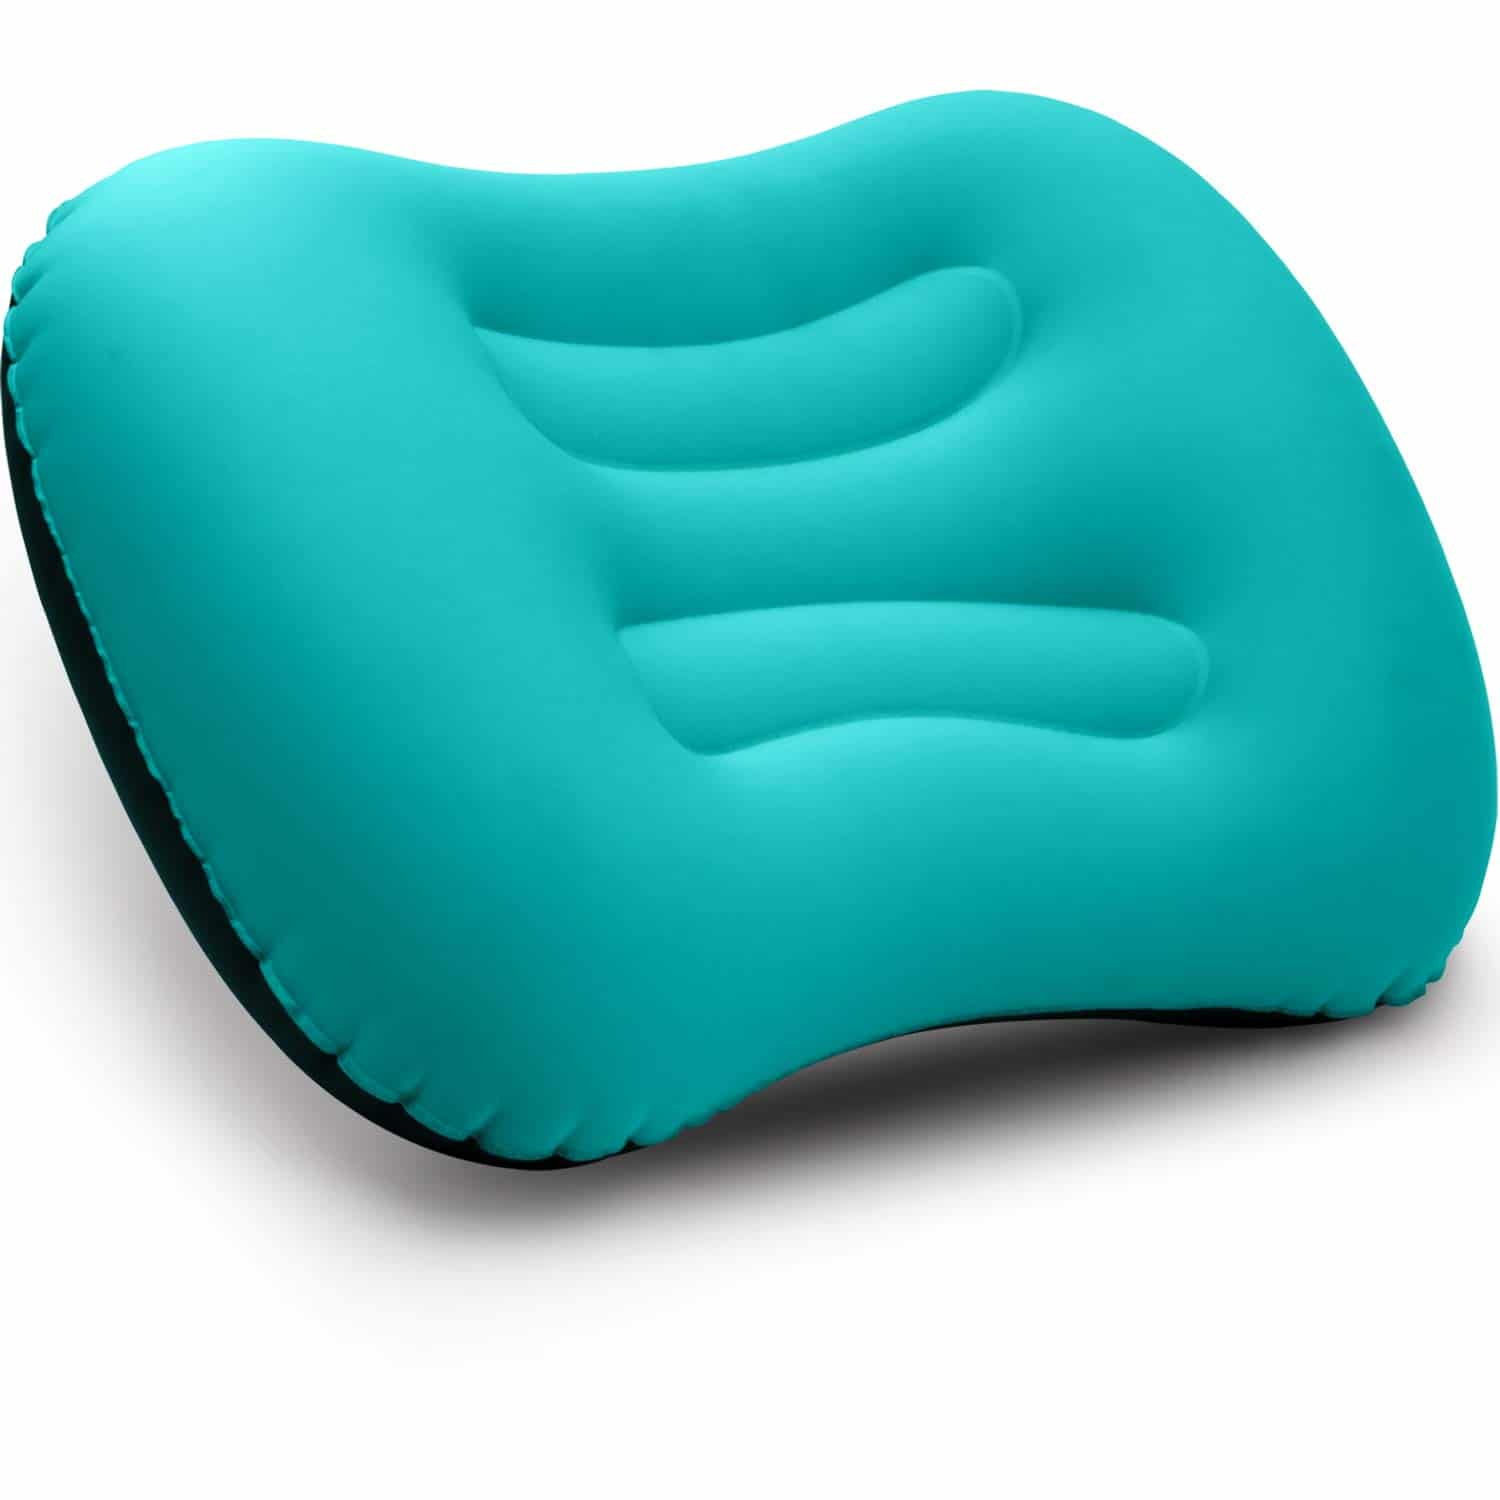 Read more about the article BETUS Dreamer Comfort Ultralight Inflatable Air Pillow